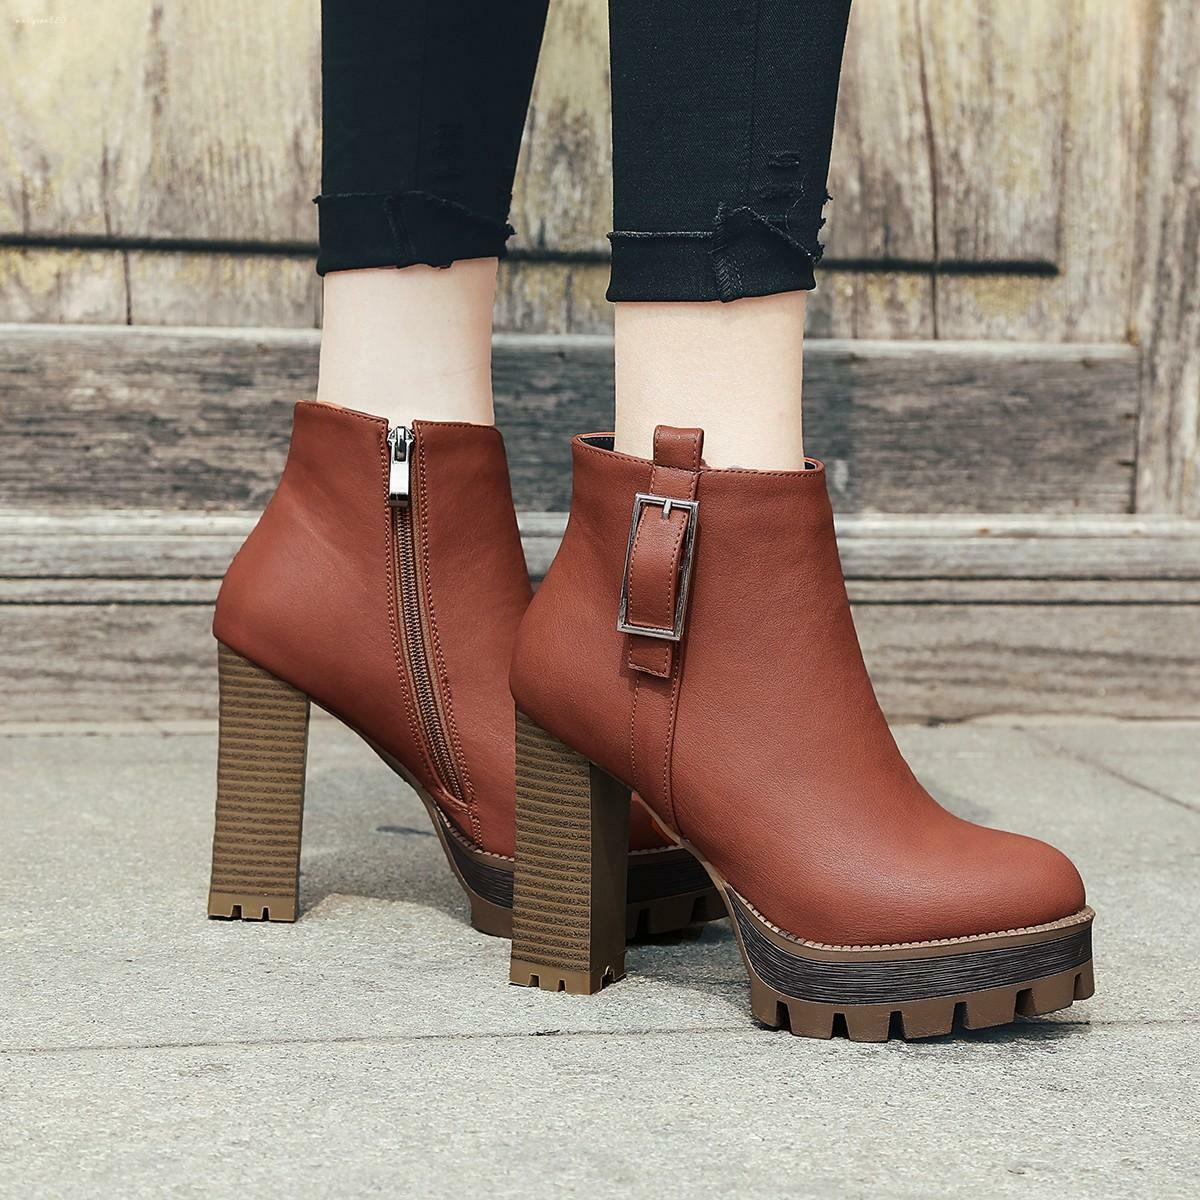 Retro Womens Ankle Boots HighChunky Heel Platform Side Zipper shoes Casual Party